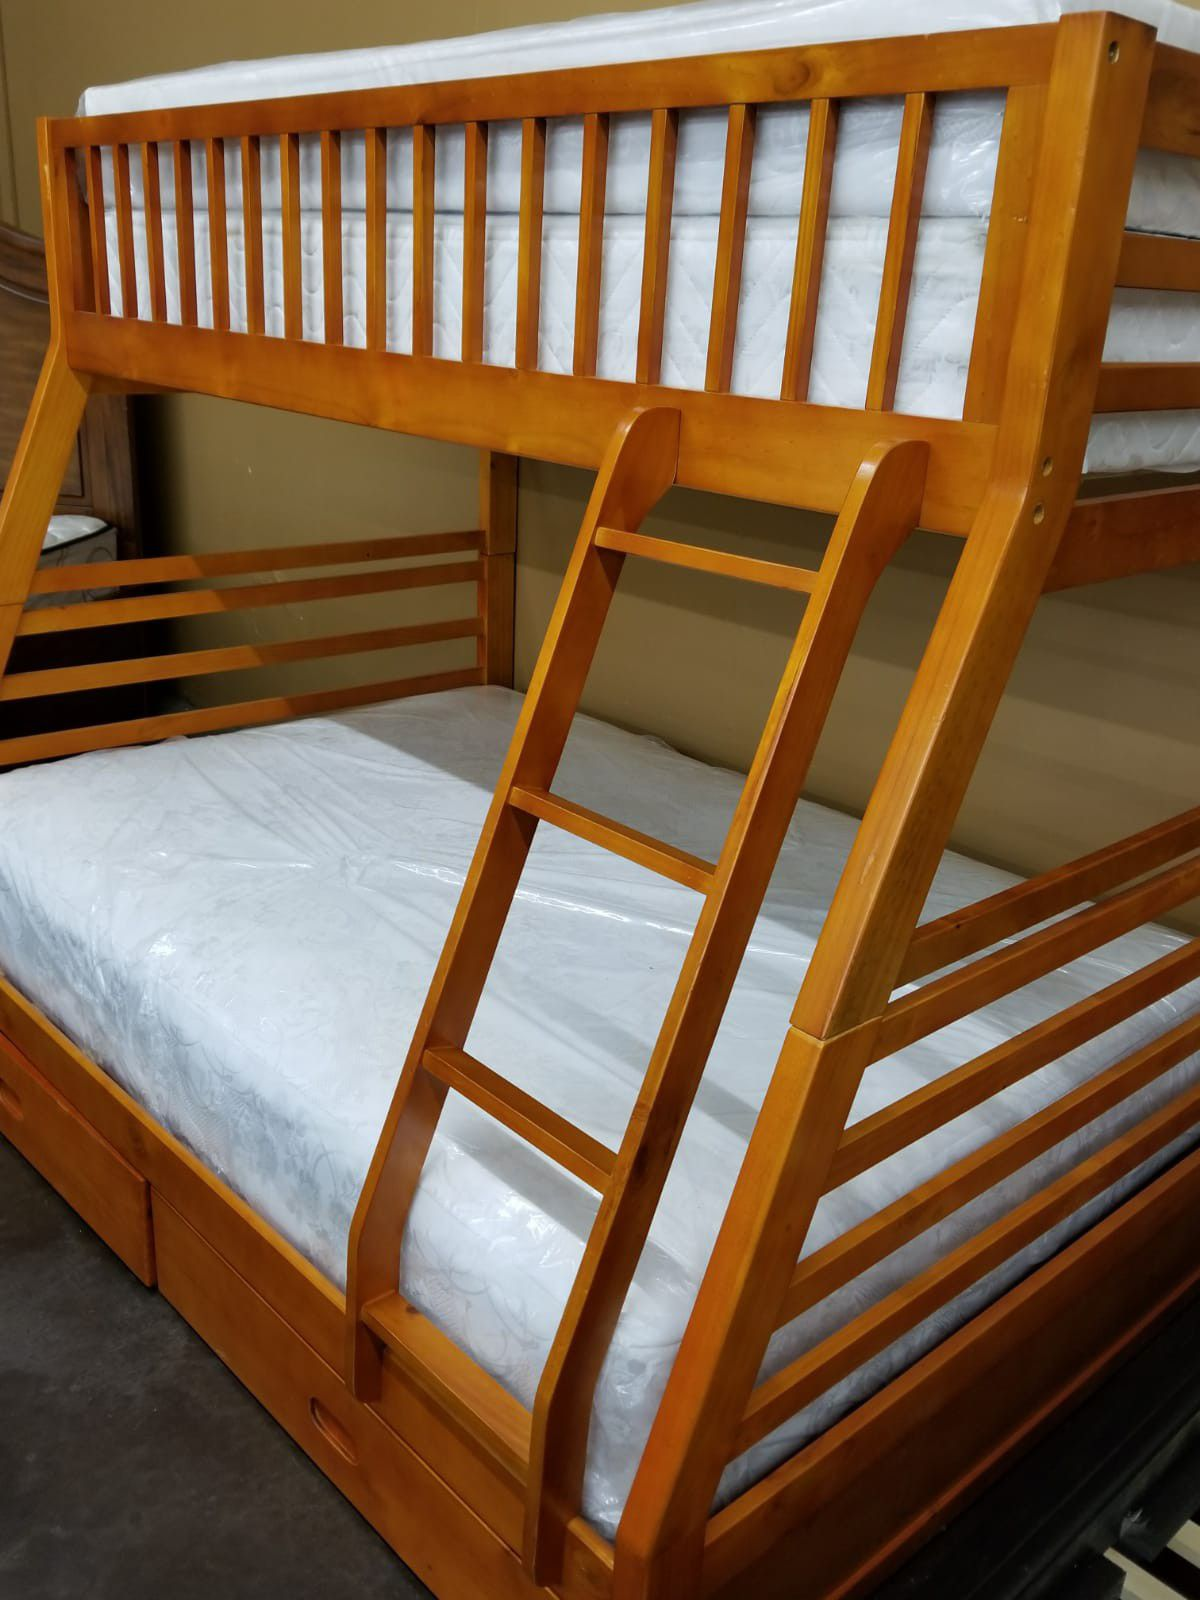 Solid wood Twin/full bunkbed with two mattresses